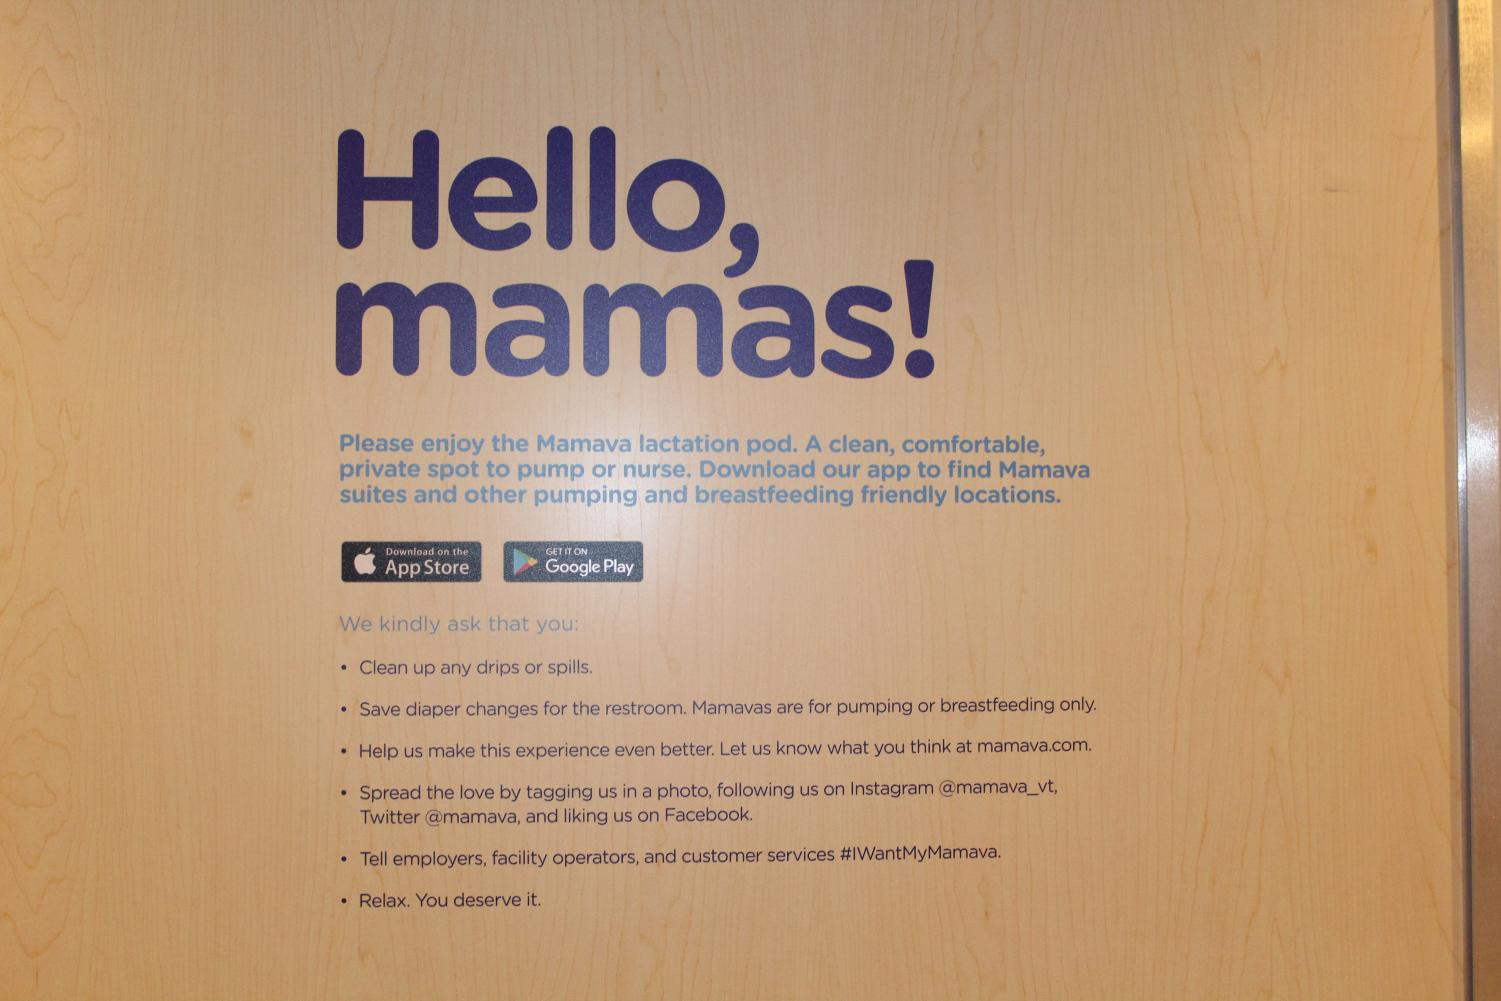 The sign inside the lactation booth asking users to clean after themselves.